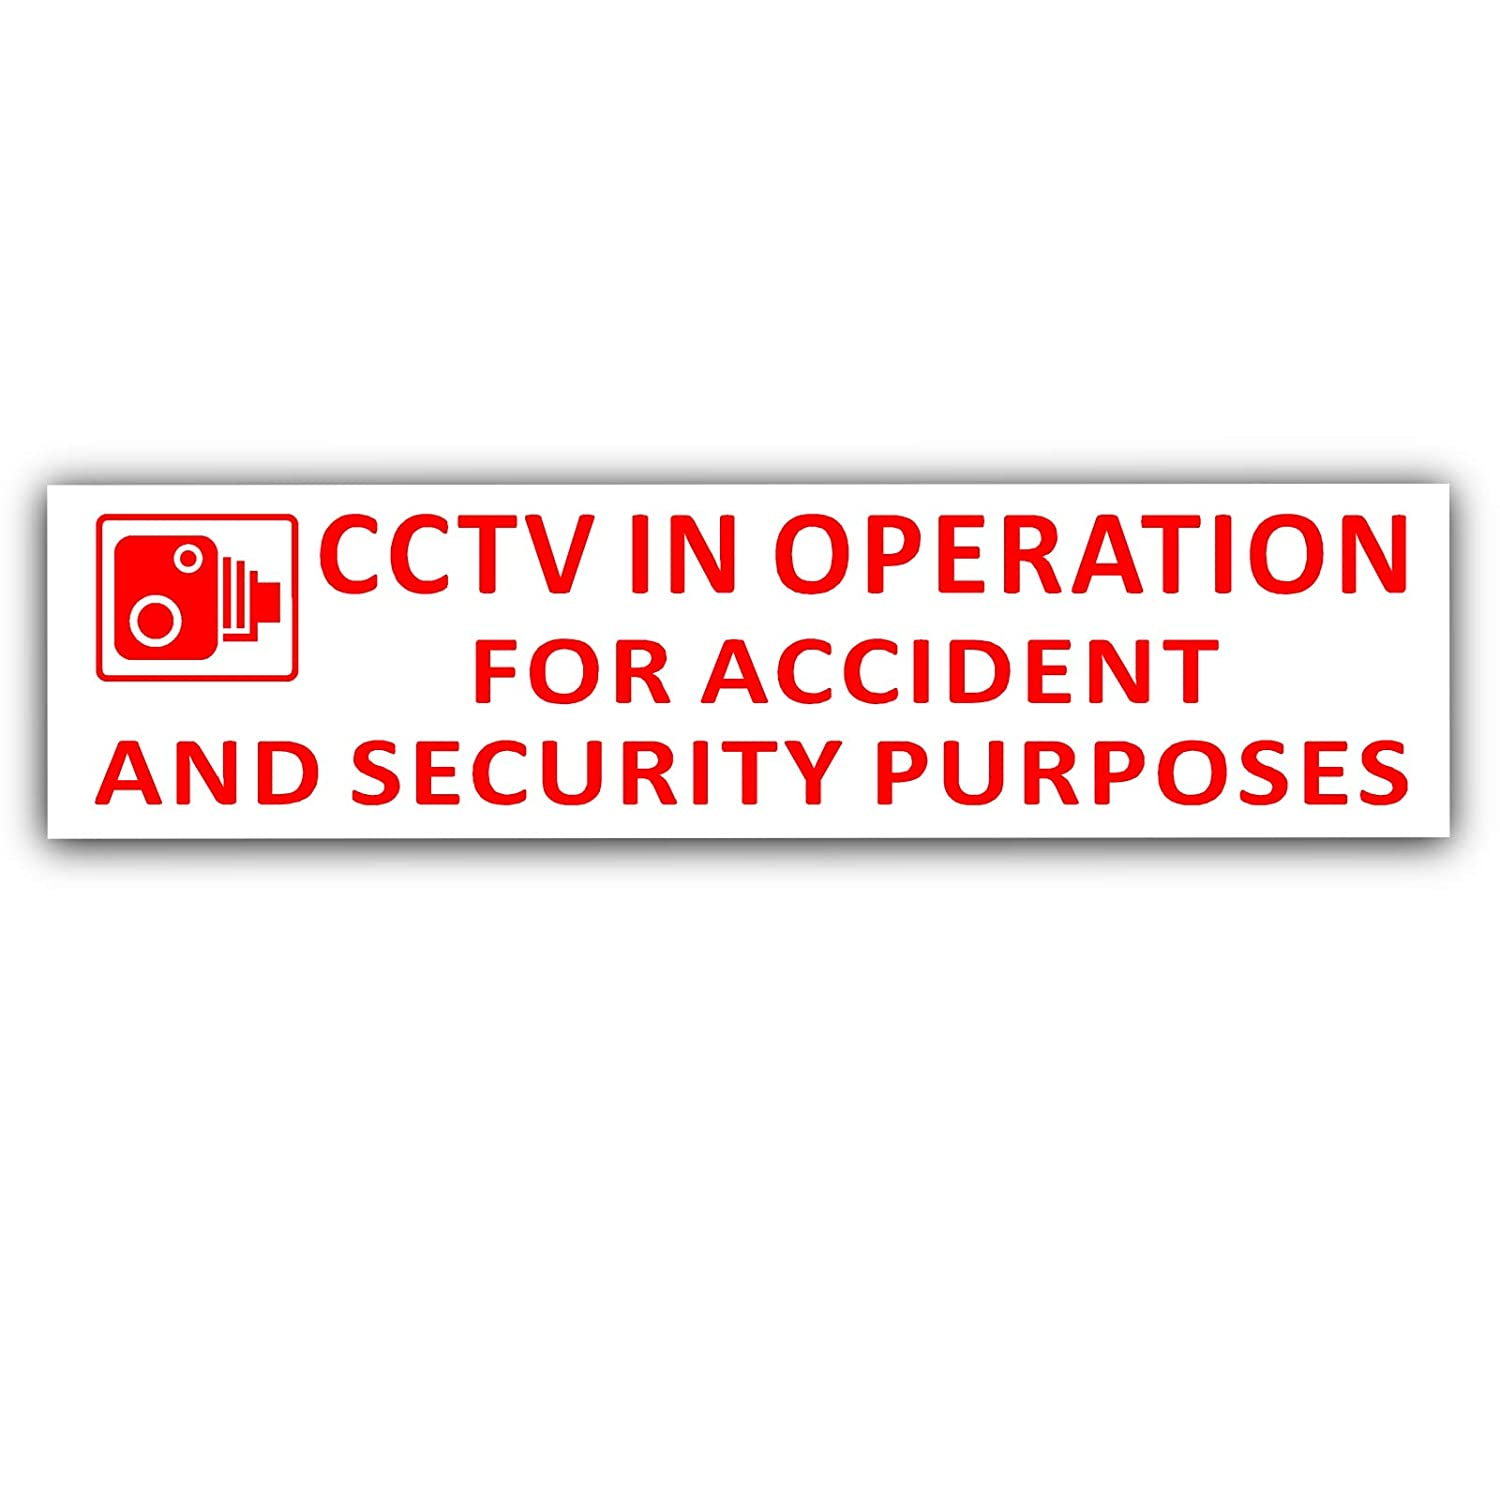 Platinum Place 2 x 200x43mm-EXTERNAL RED ON WHITE-CCTV In Operation for Accident and Security Purposes Window Sticker-CCTV Sign-Car, Van, Lorry, Truck, Taxi, Bus, Mini Cab, Minicab-Go Pro, Dashcam